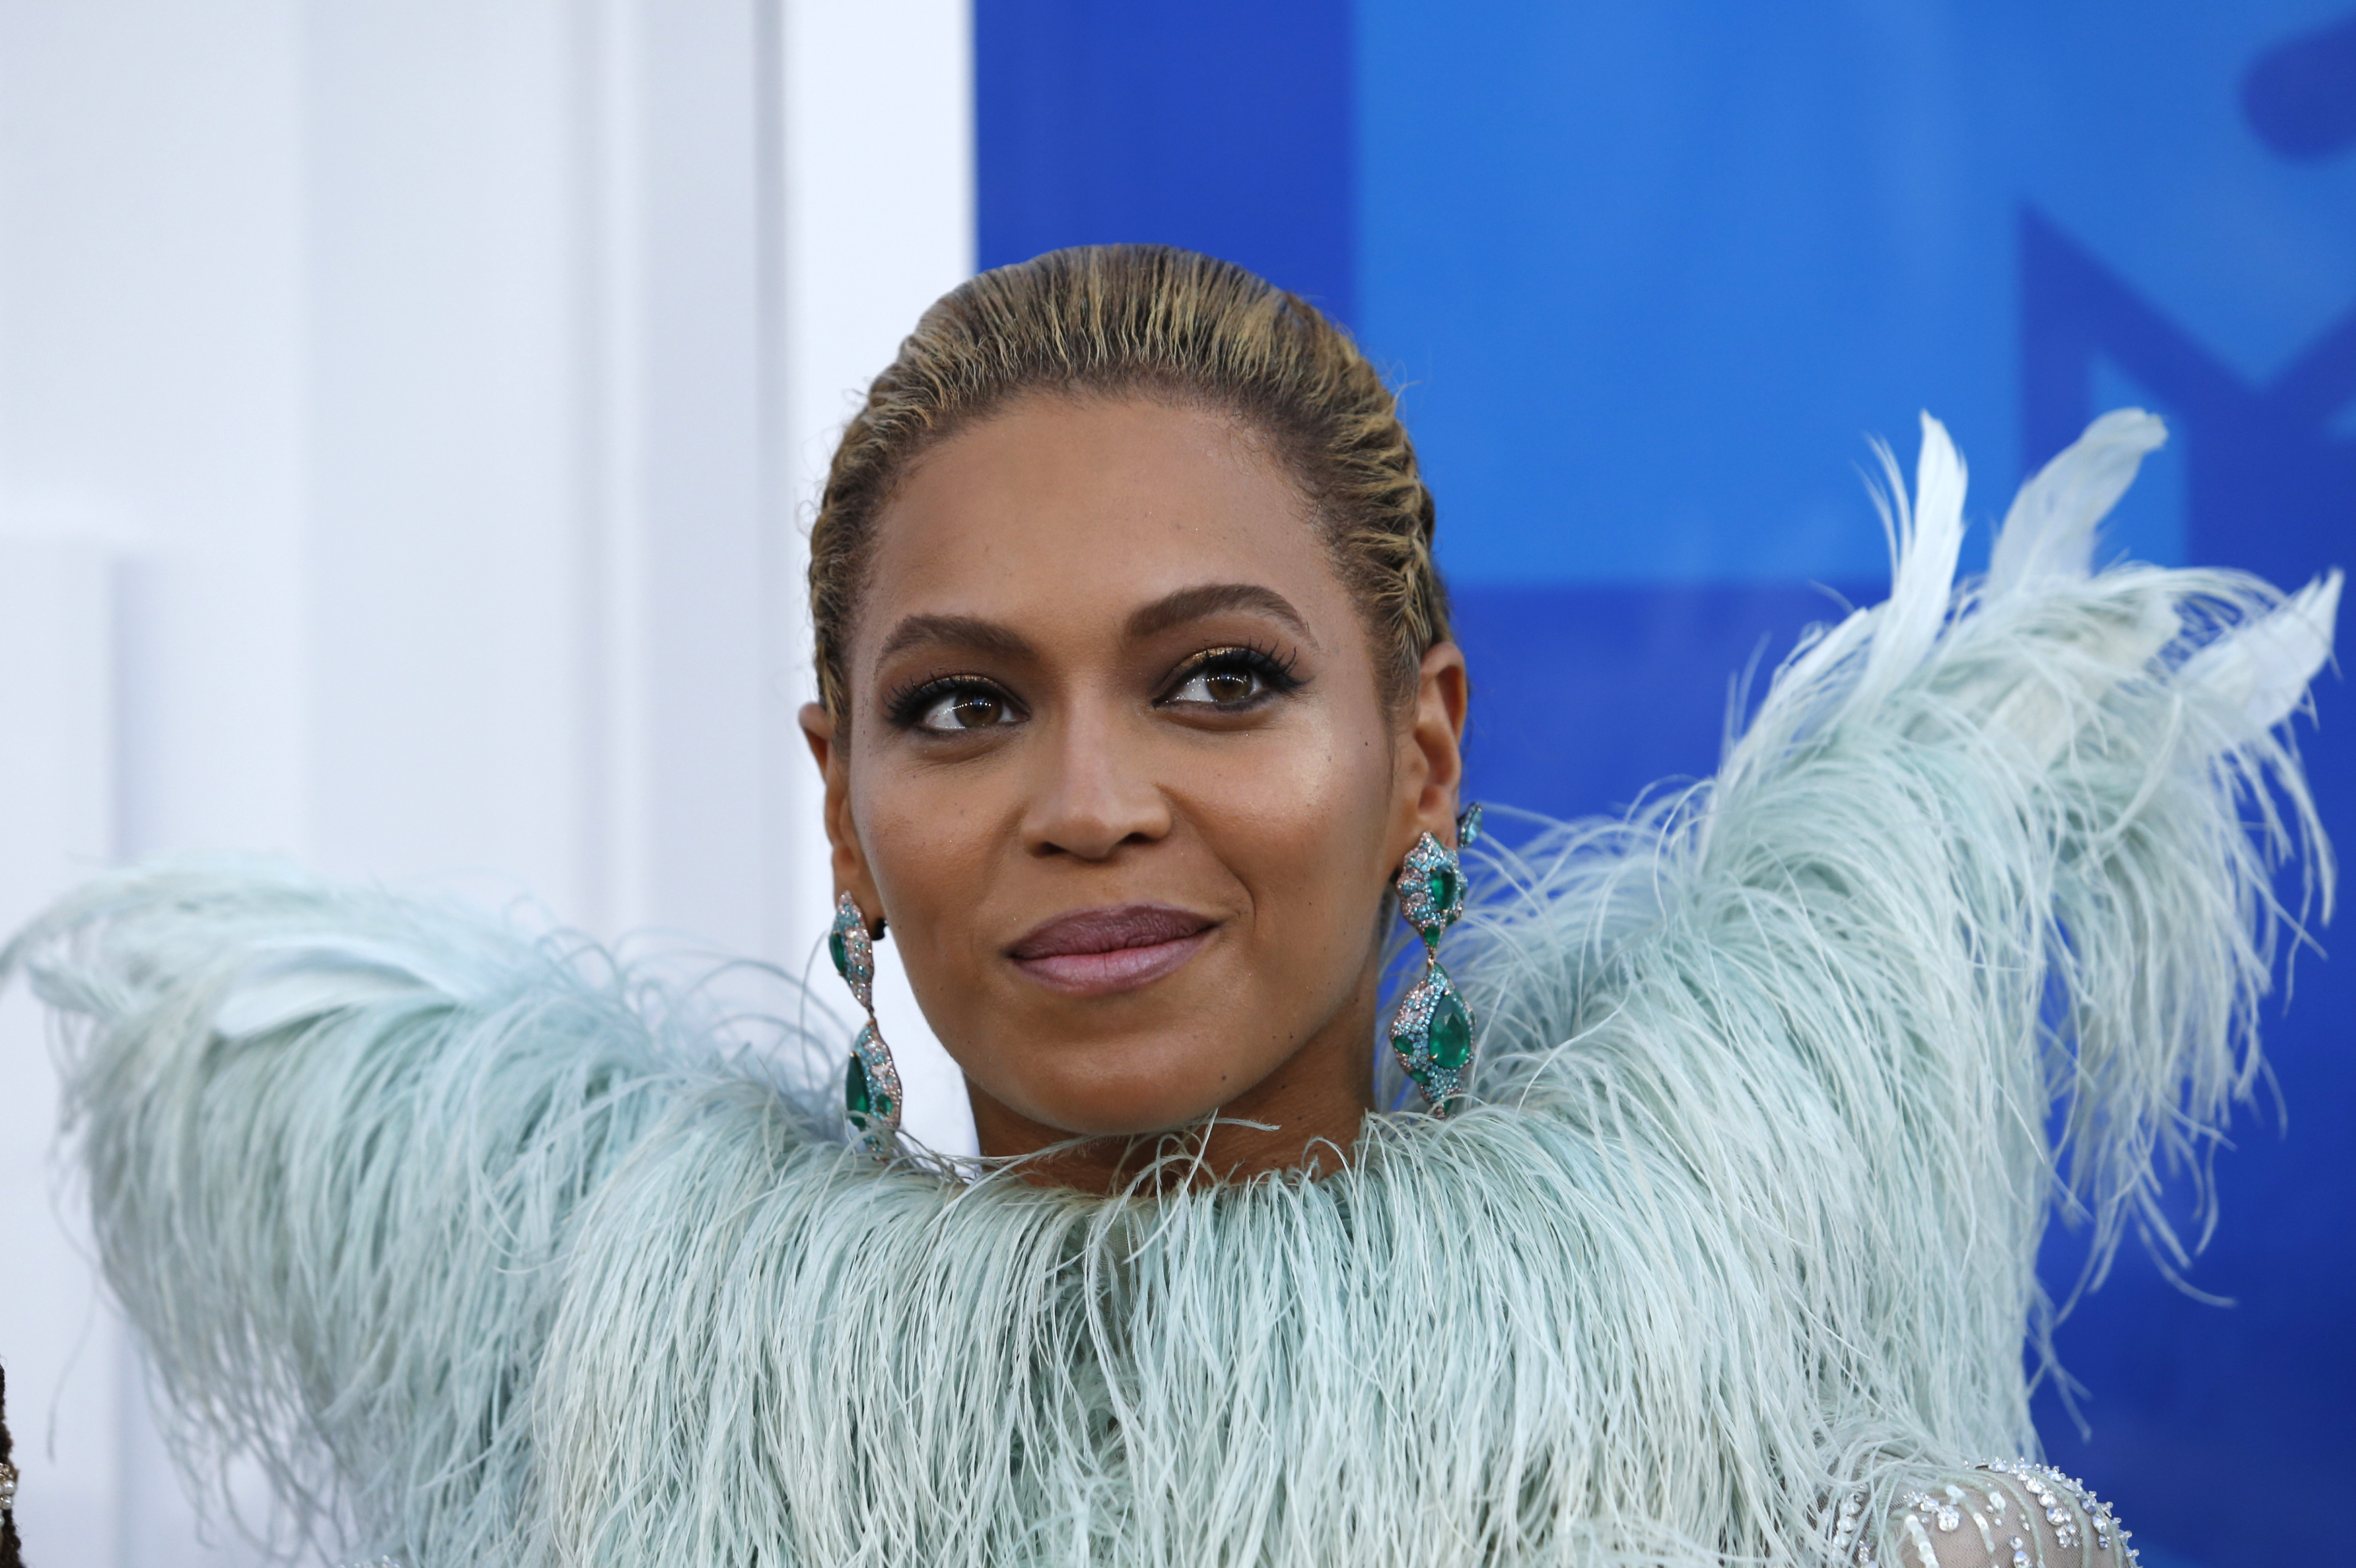 Singer Beyonce arrives at the 2016 MTV Video Music Awards in New York, U.S., August 28, 2016. REUTERS/Eduardo Munoz - RTX2NDYX